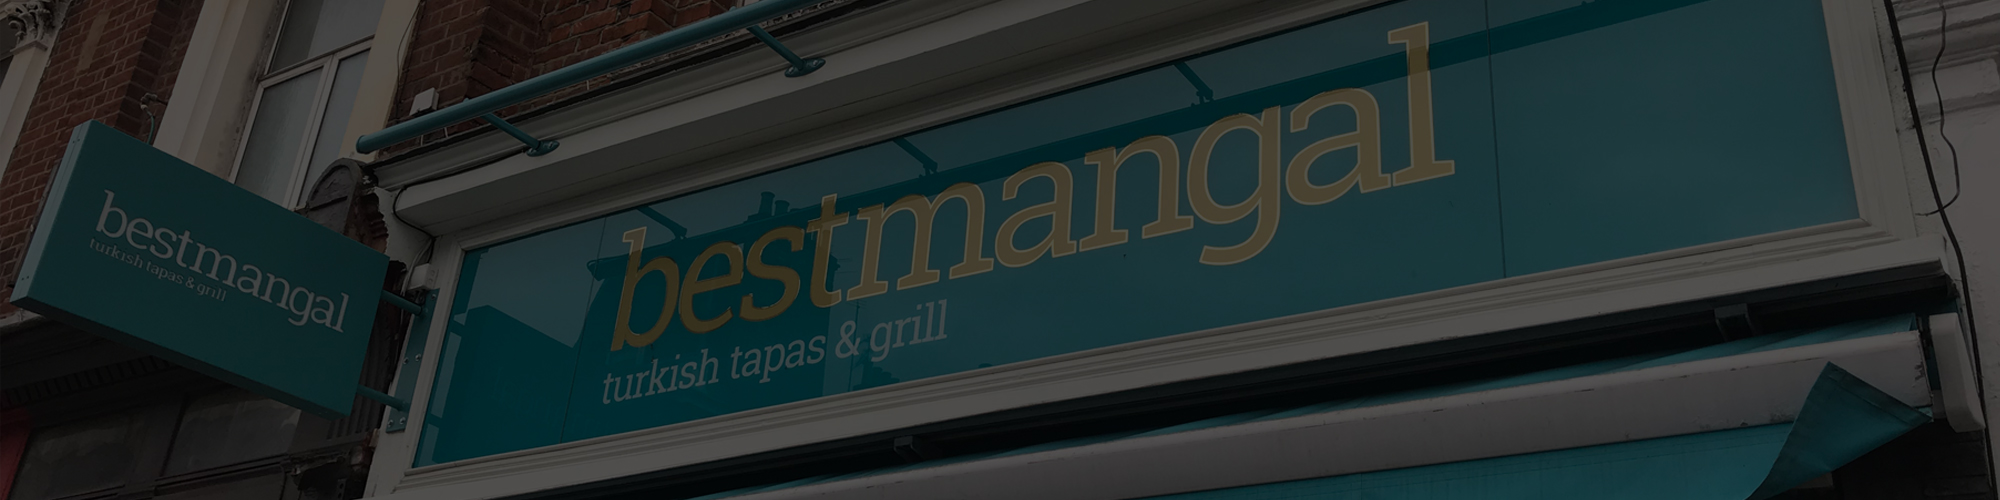 best mangal turkish tapas & grill external shopfront signage